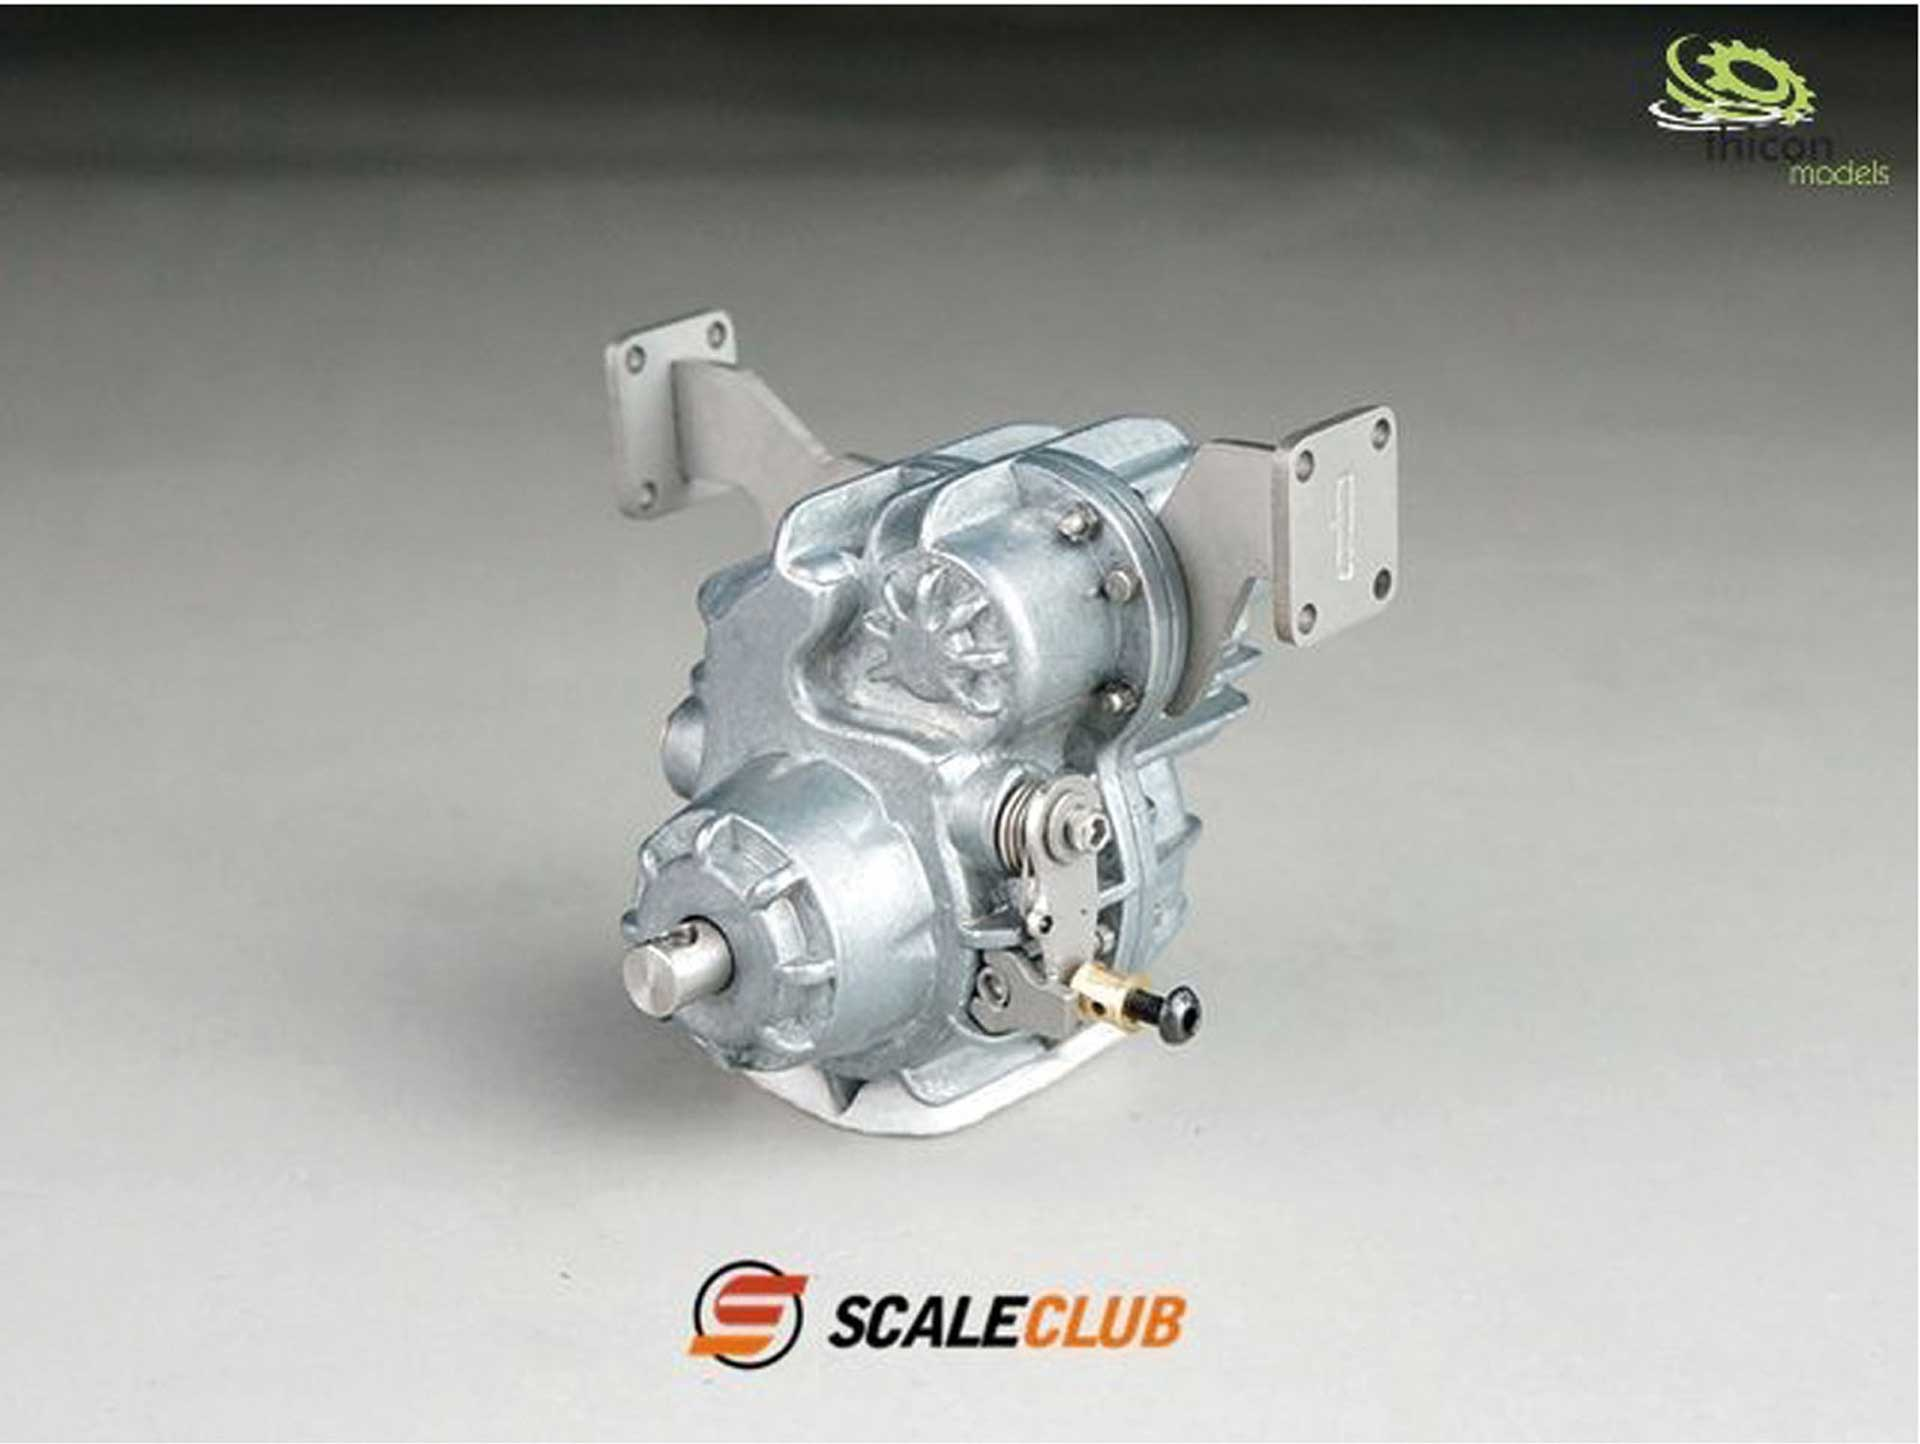 Scale Club Verteilergetriebe mit Differential sperrbar 6:1